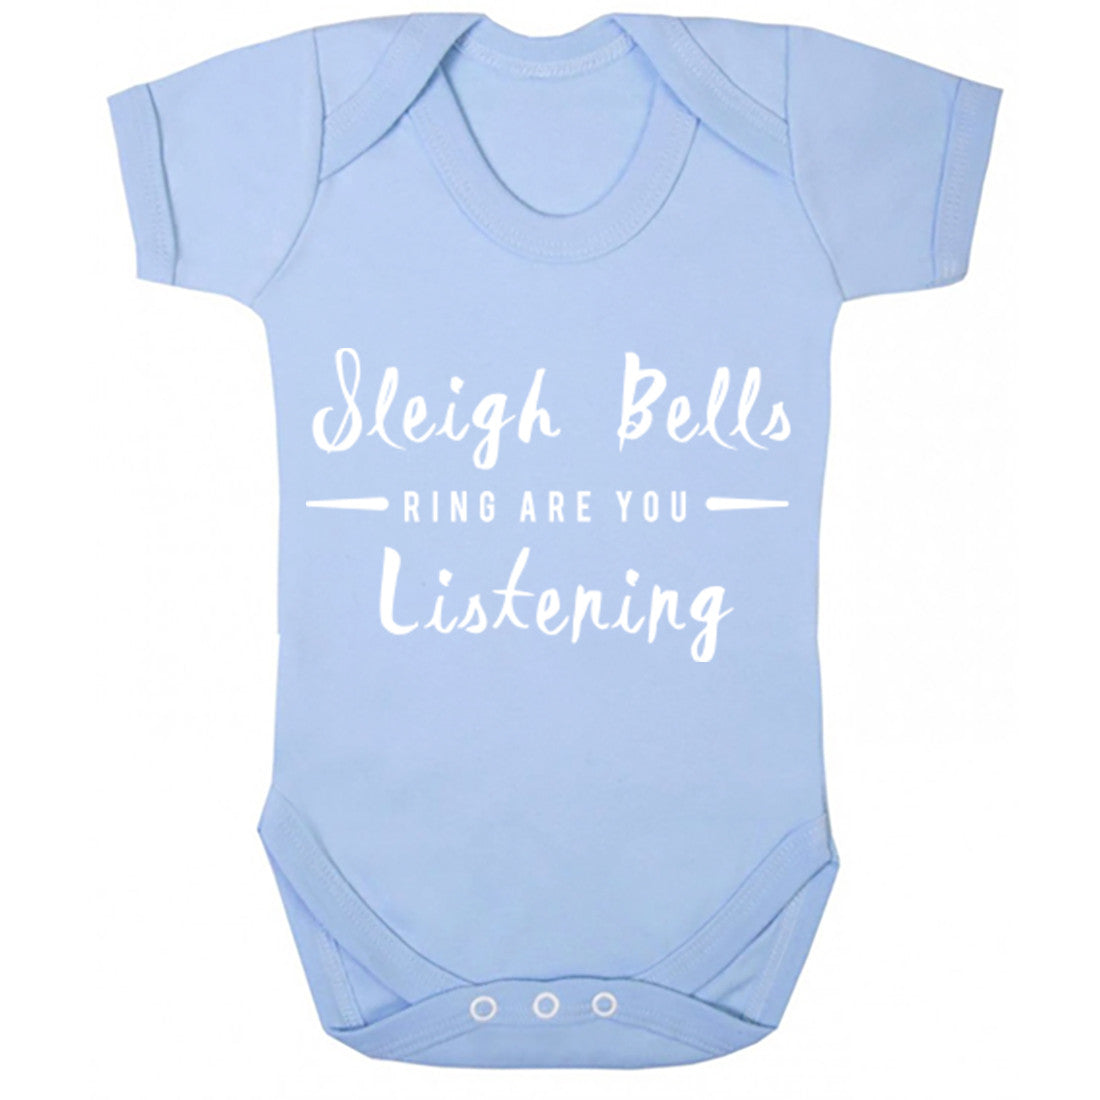 Sleigh Bells Ring Are You Listening Baby Vest K0143 - Illustrated Identity Ltd.